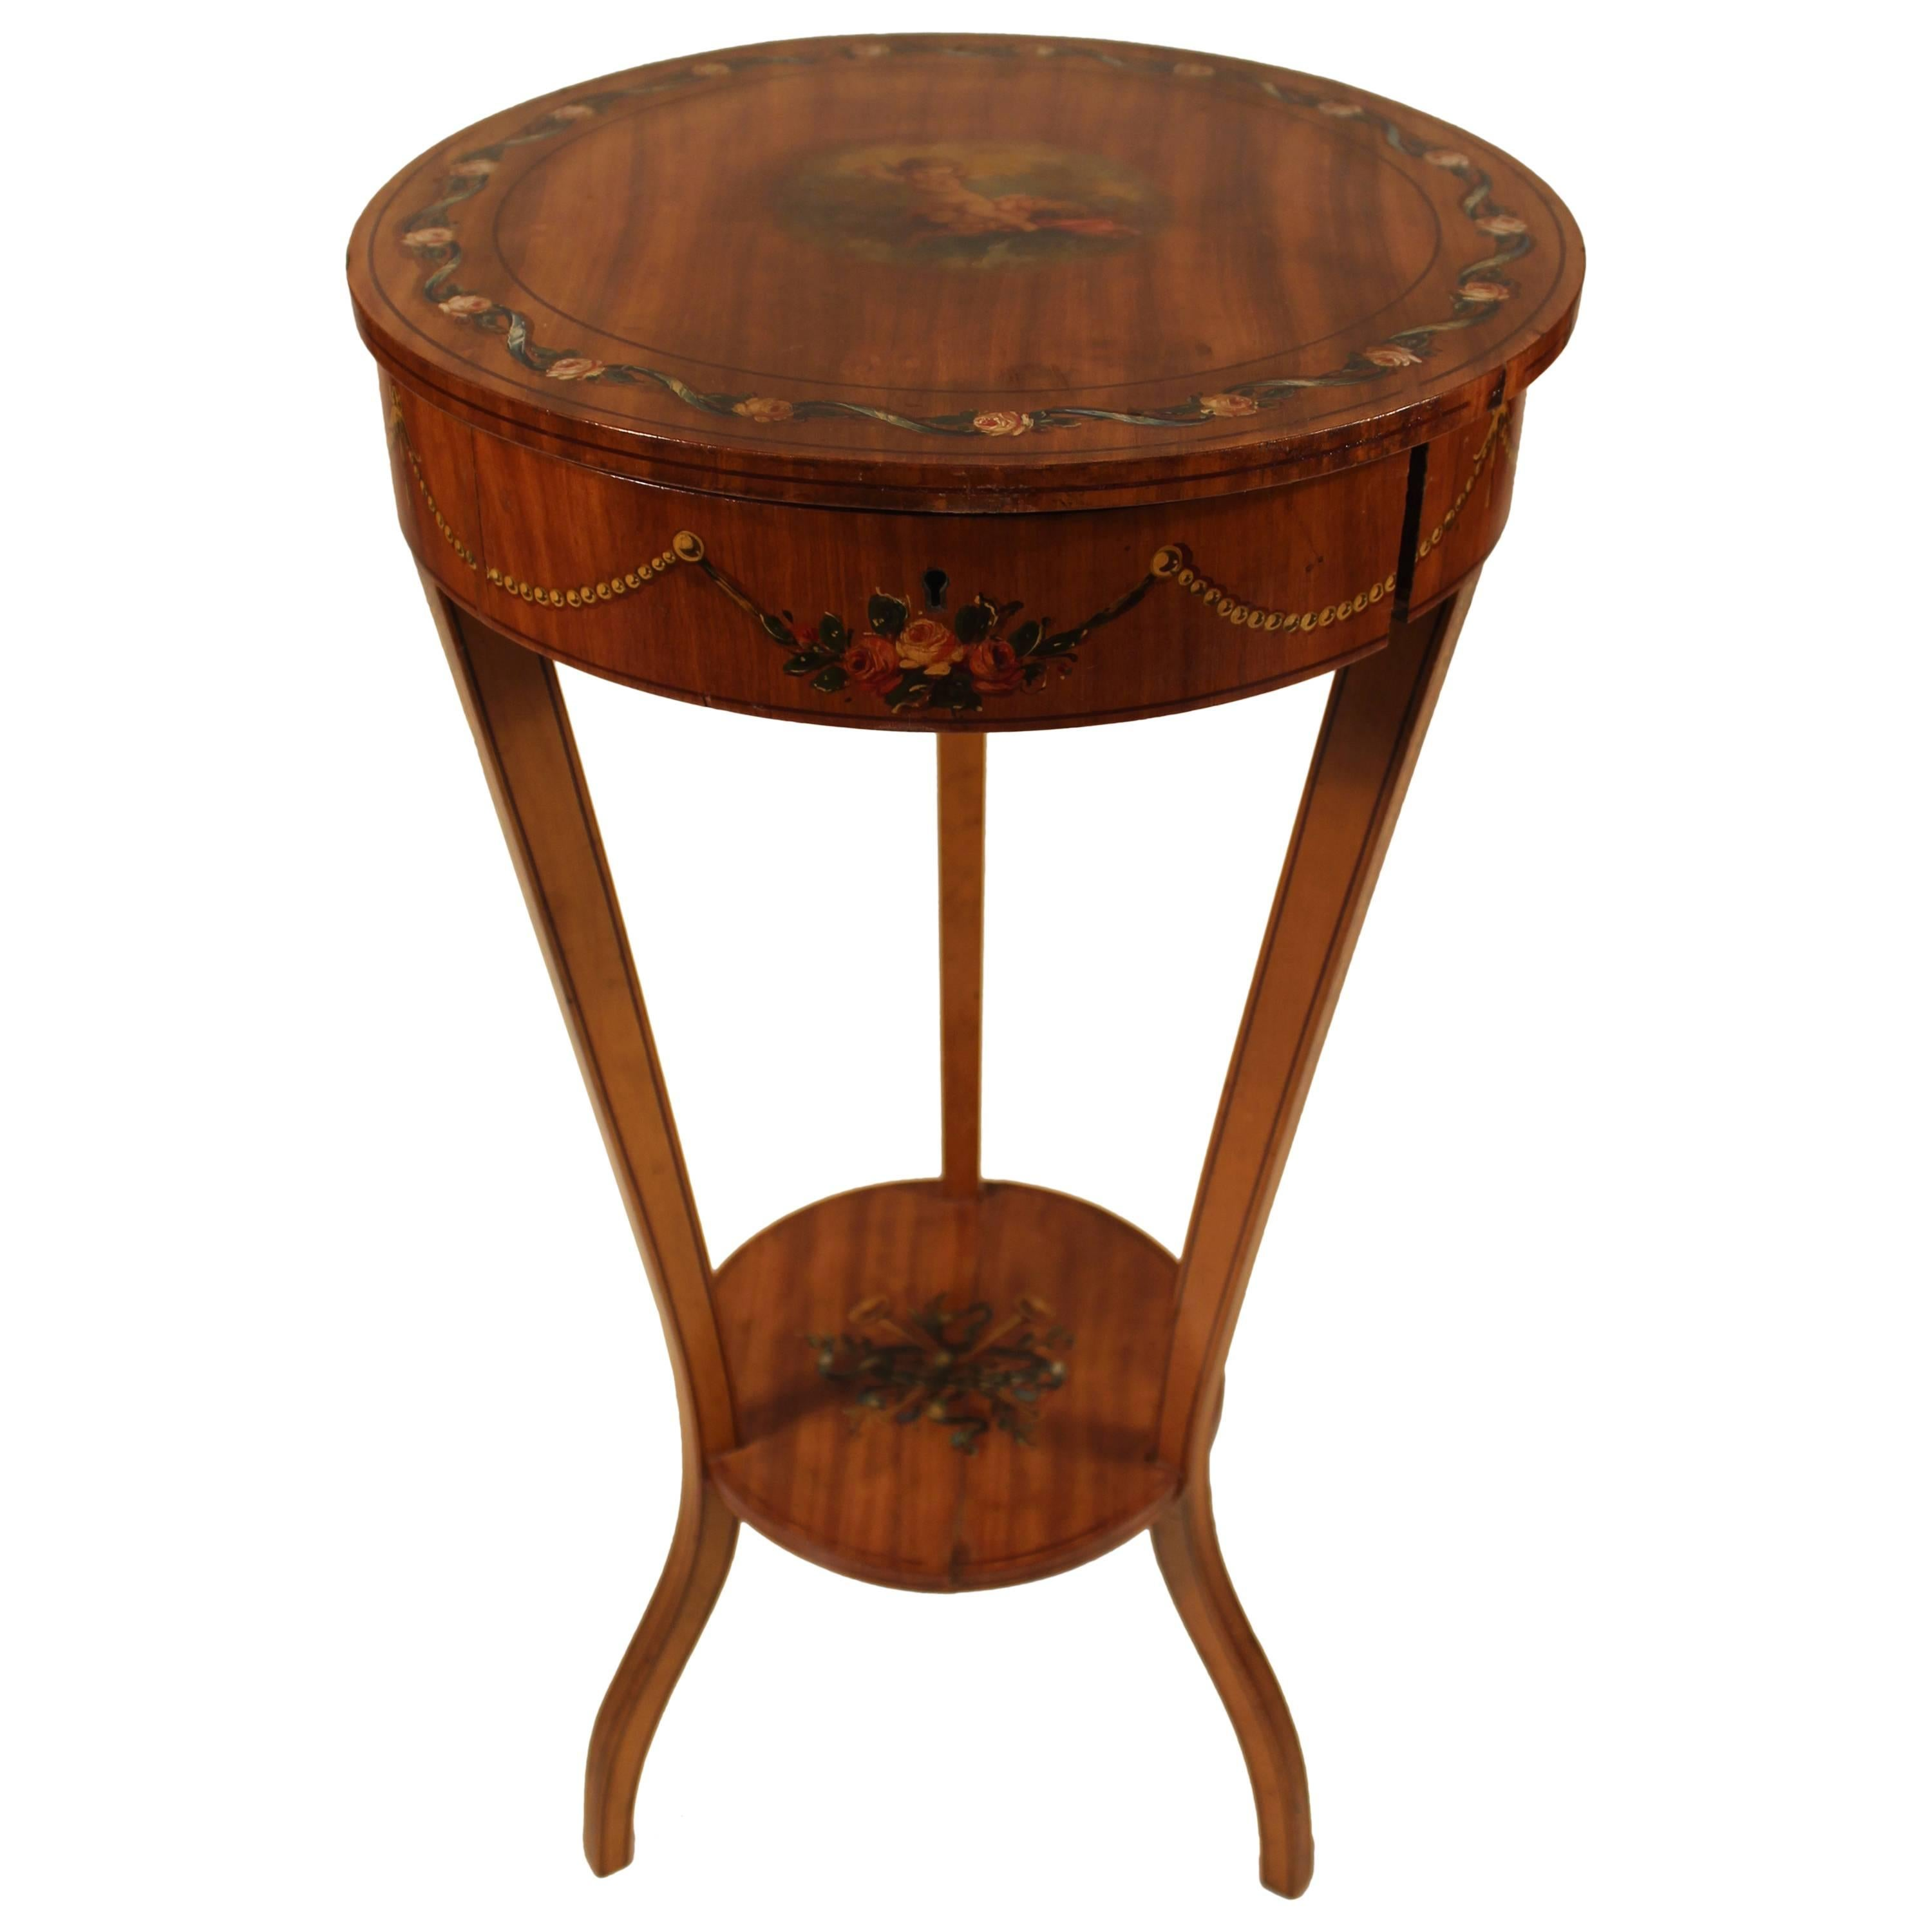 19th Century Sheraton Style Working Table